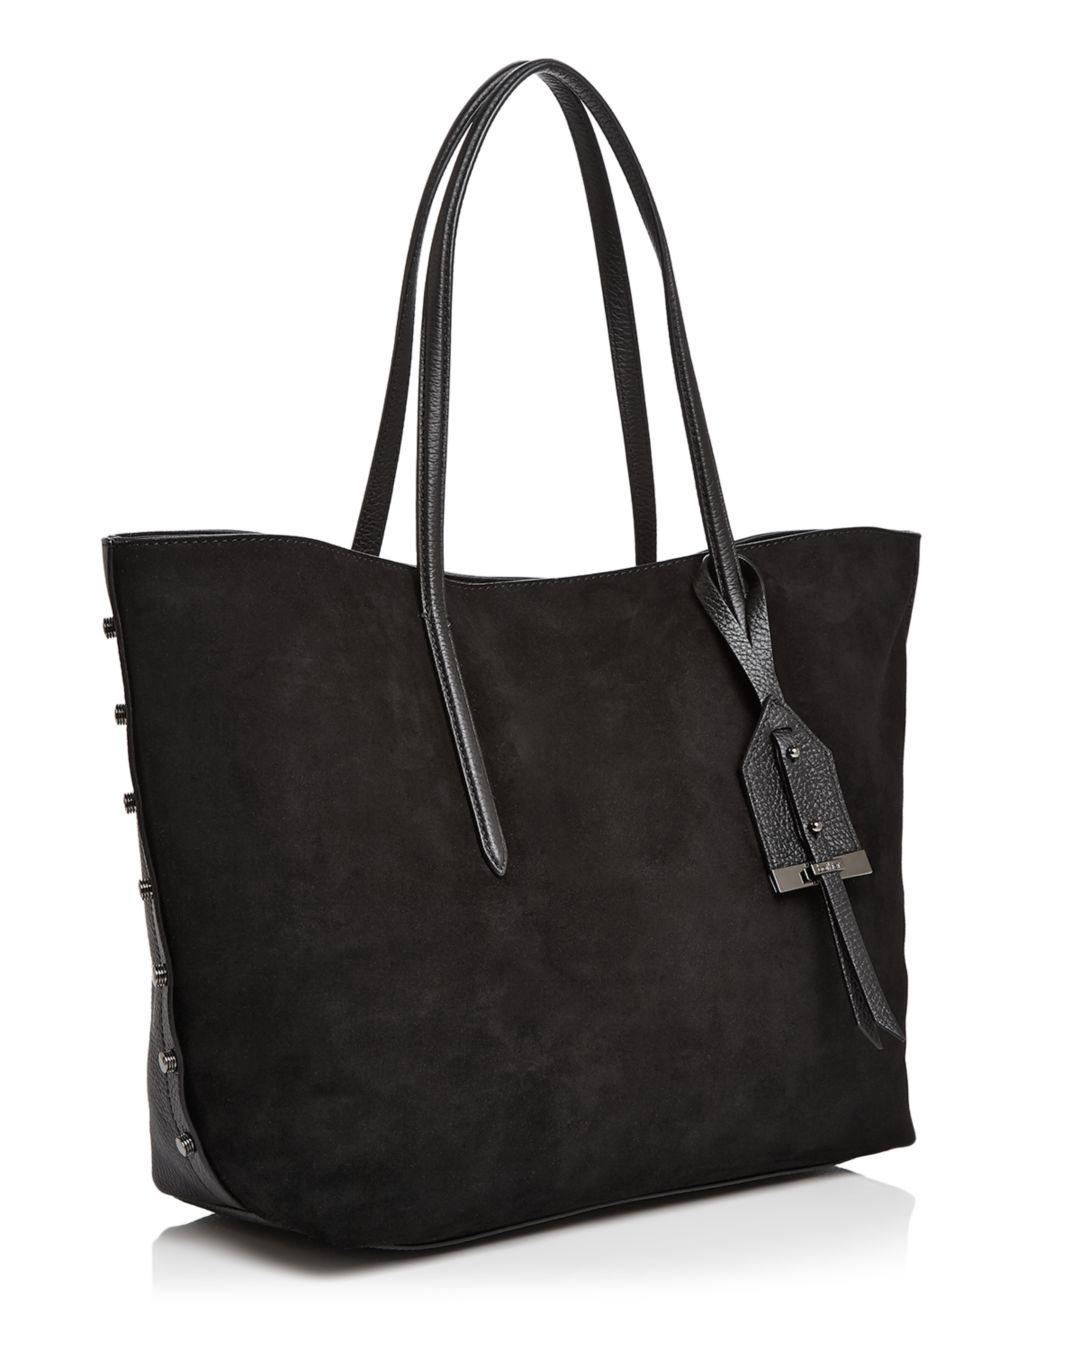 Botkier Leather Madison Tote